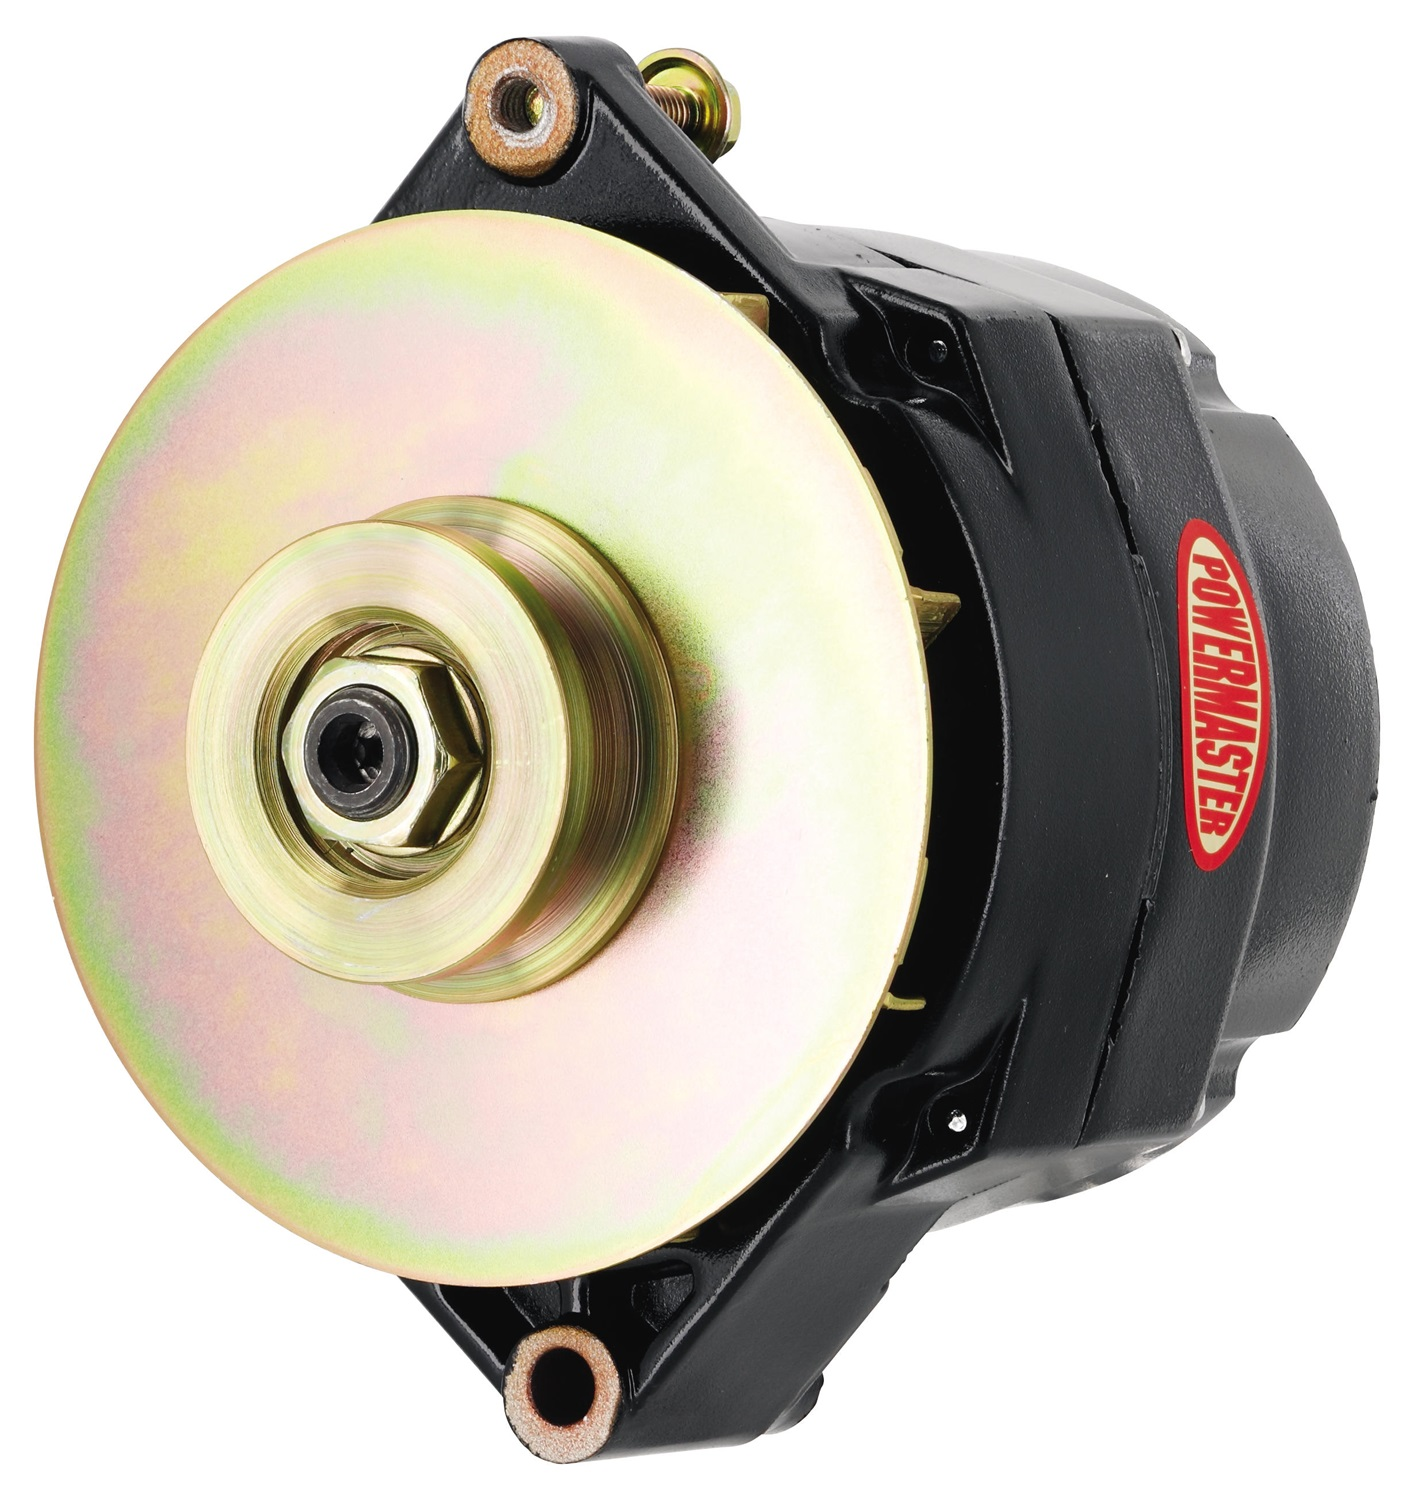 small resolution of powermaster 57294 alternator generator gm 12si style single v belt pulley 150 amp 1 or 3 wire black walmart canada